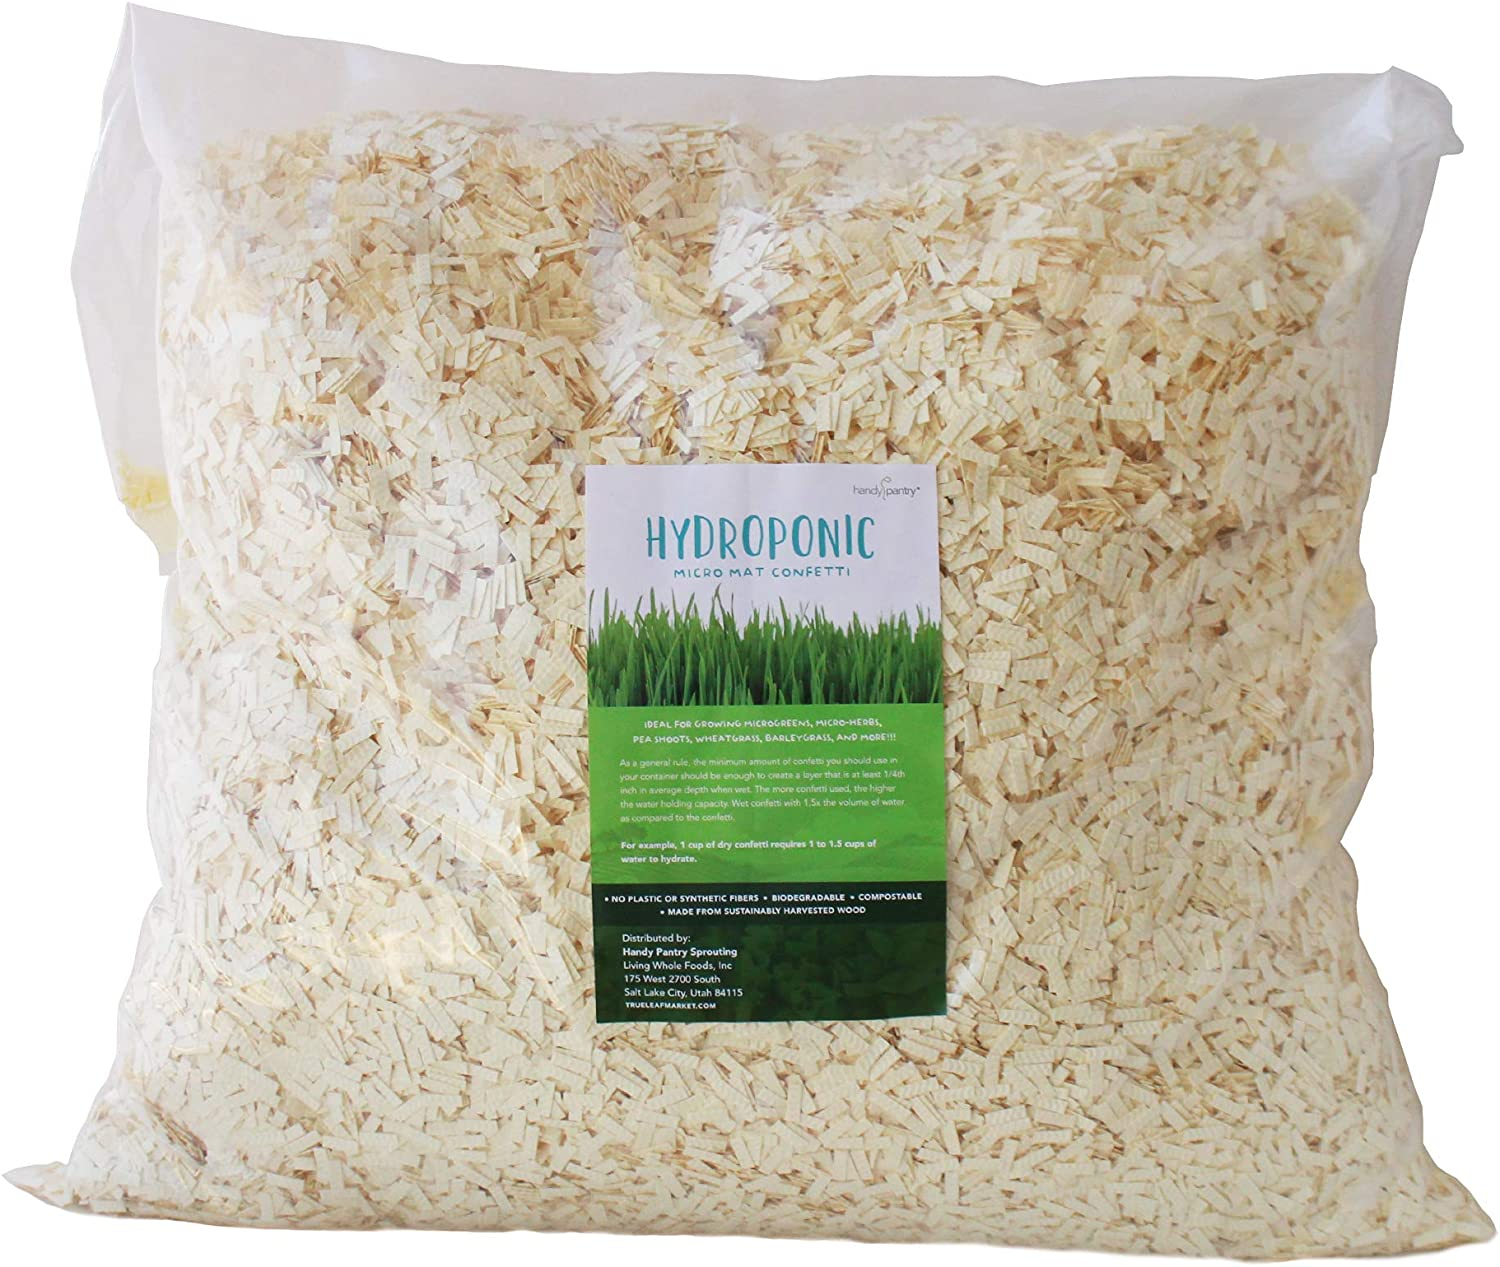 Micro Mat Hydroponic Confetti - 15 Lb Bag - Compostable Grow Medium for Microgreens & Wheatgrass - High Water Holding Capacity - 1 Lb Expands to 6.5 Quarts of Growing Media